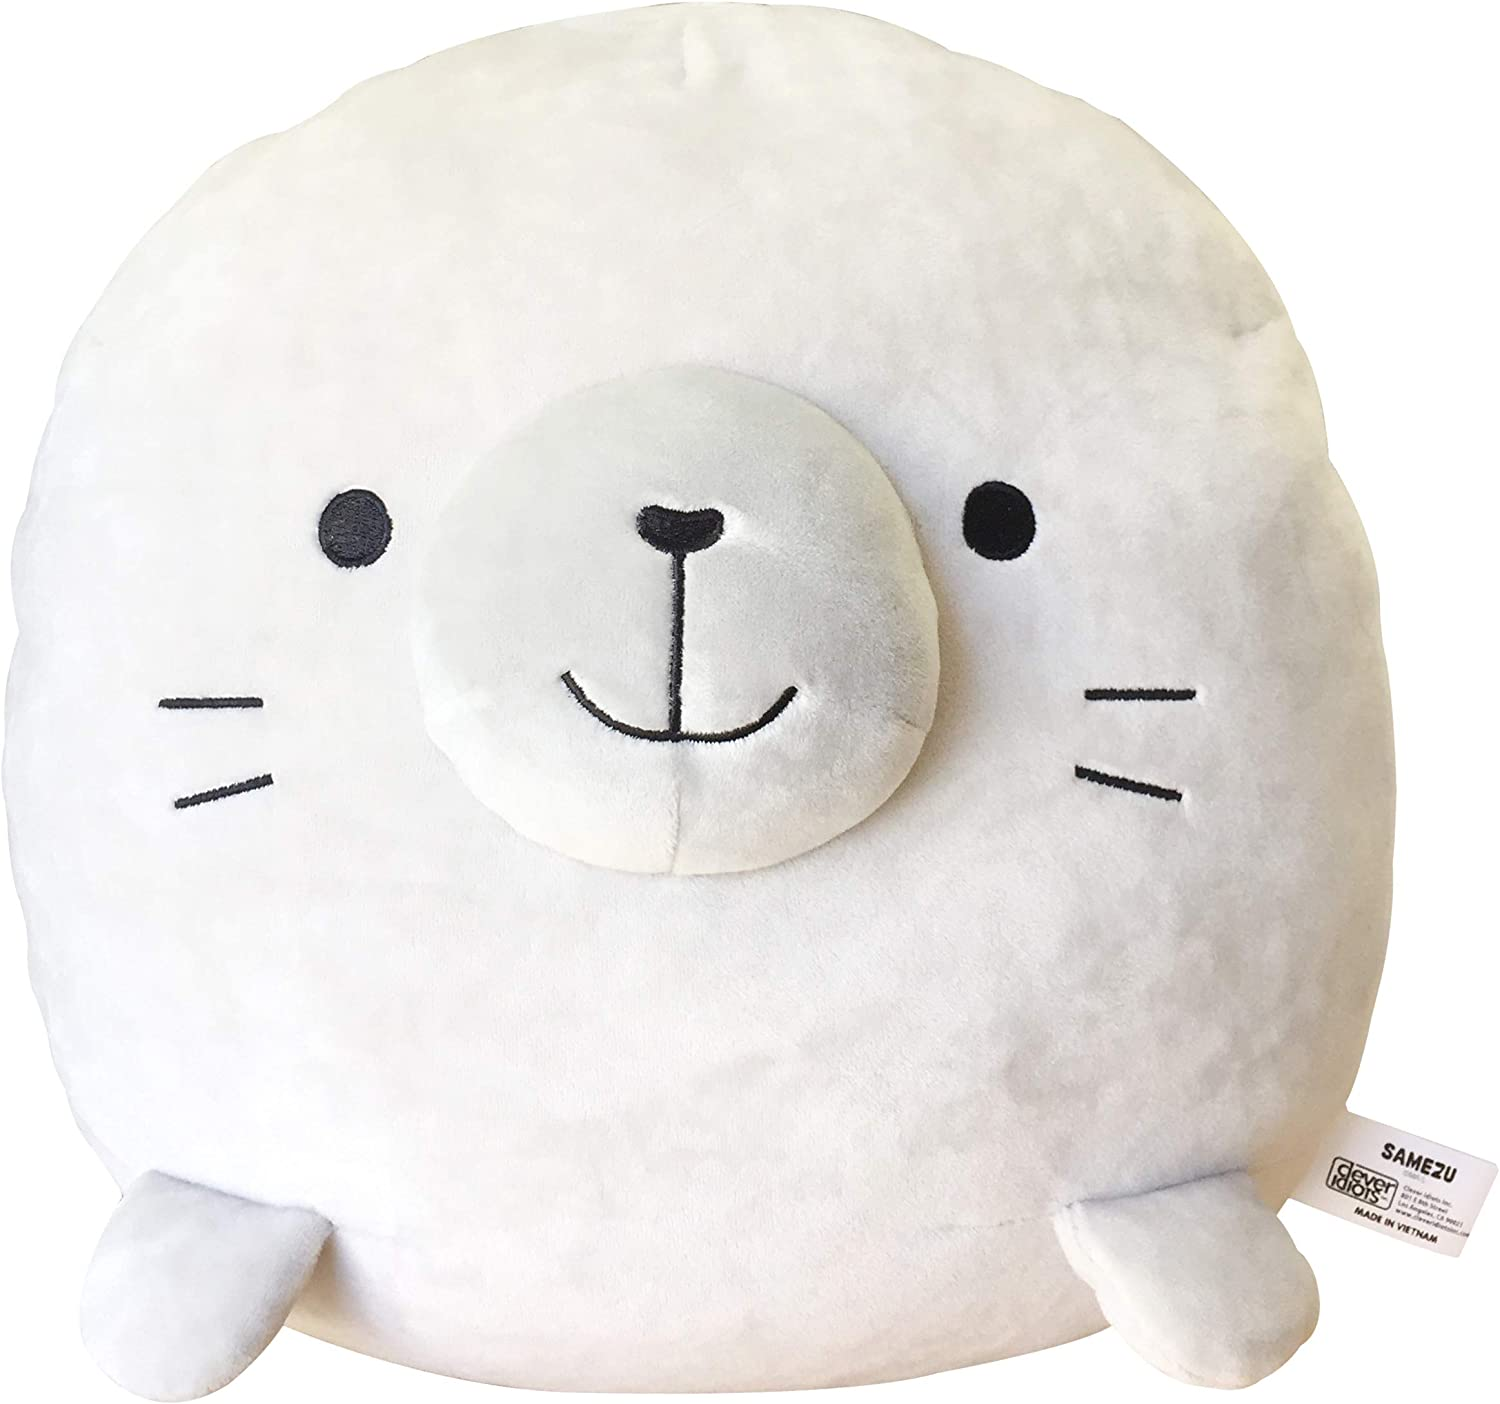 CLEVER IDIOTS INC SAMEZU Mochi Squishy Plush Stuffed Animal - Cute, Collectible and Cuddly Toy Character - Authentic Japanese Kawaii Design (Yummy)